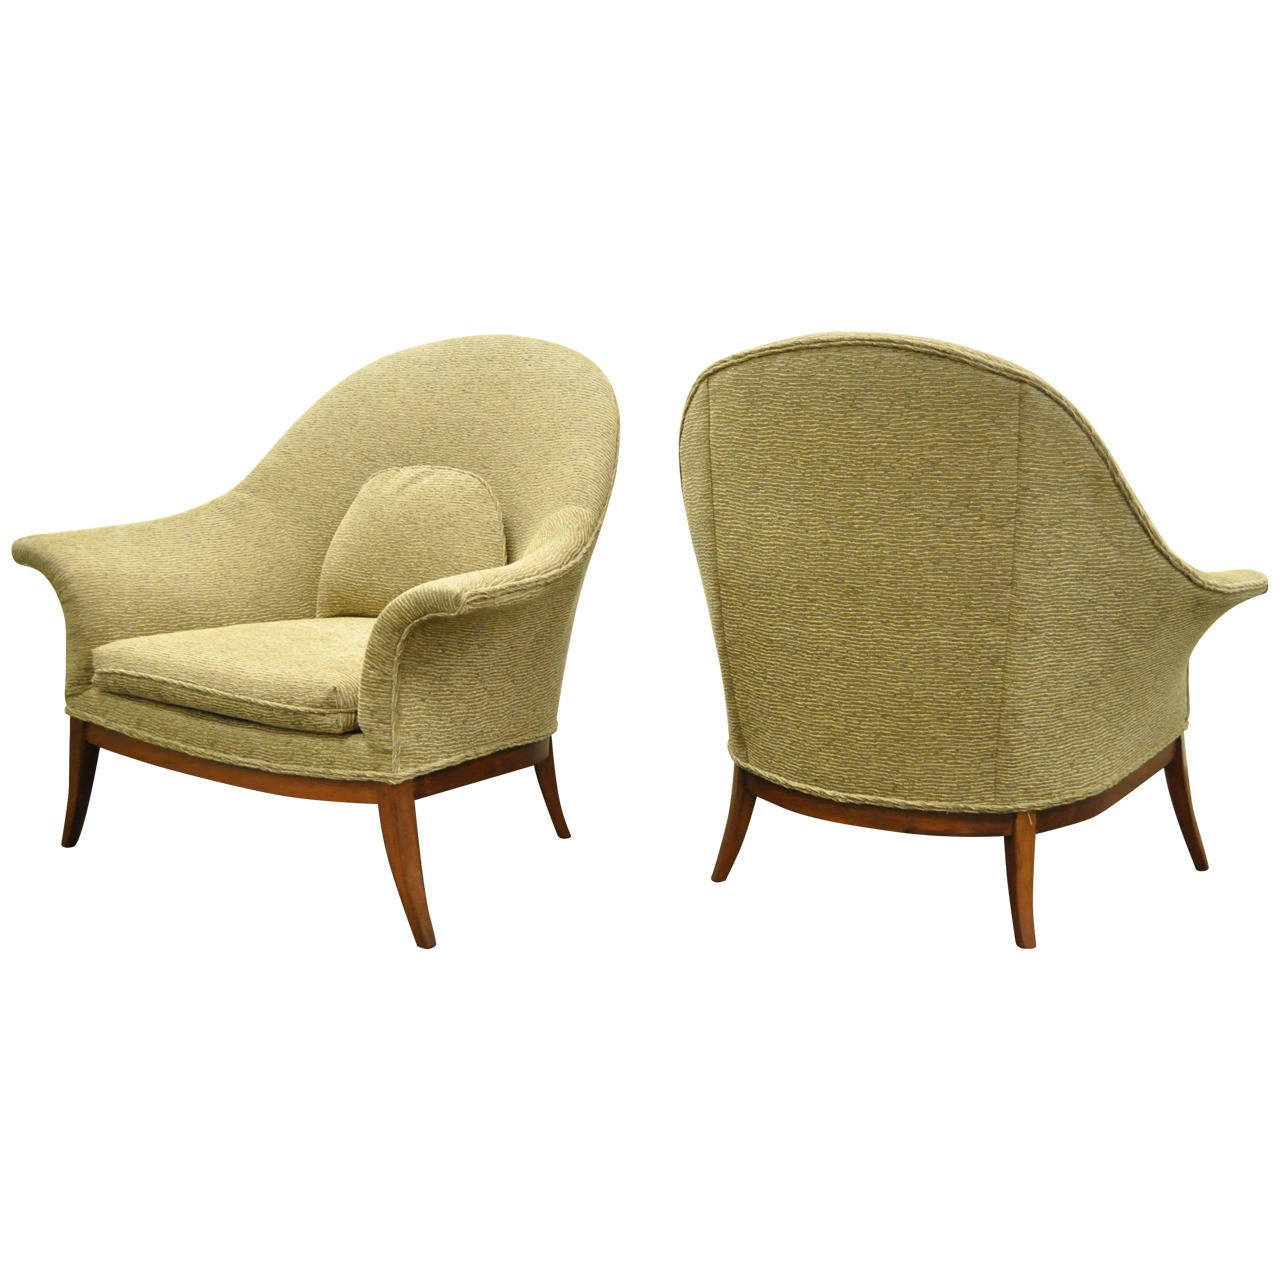 Remarkable Pair of Sculpted Frame Club or Lounge Chairs after Edward Wormley